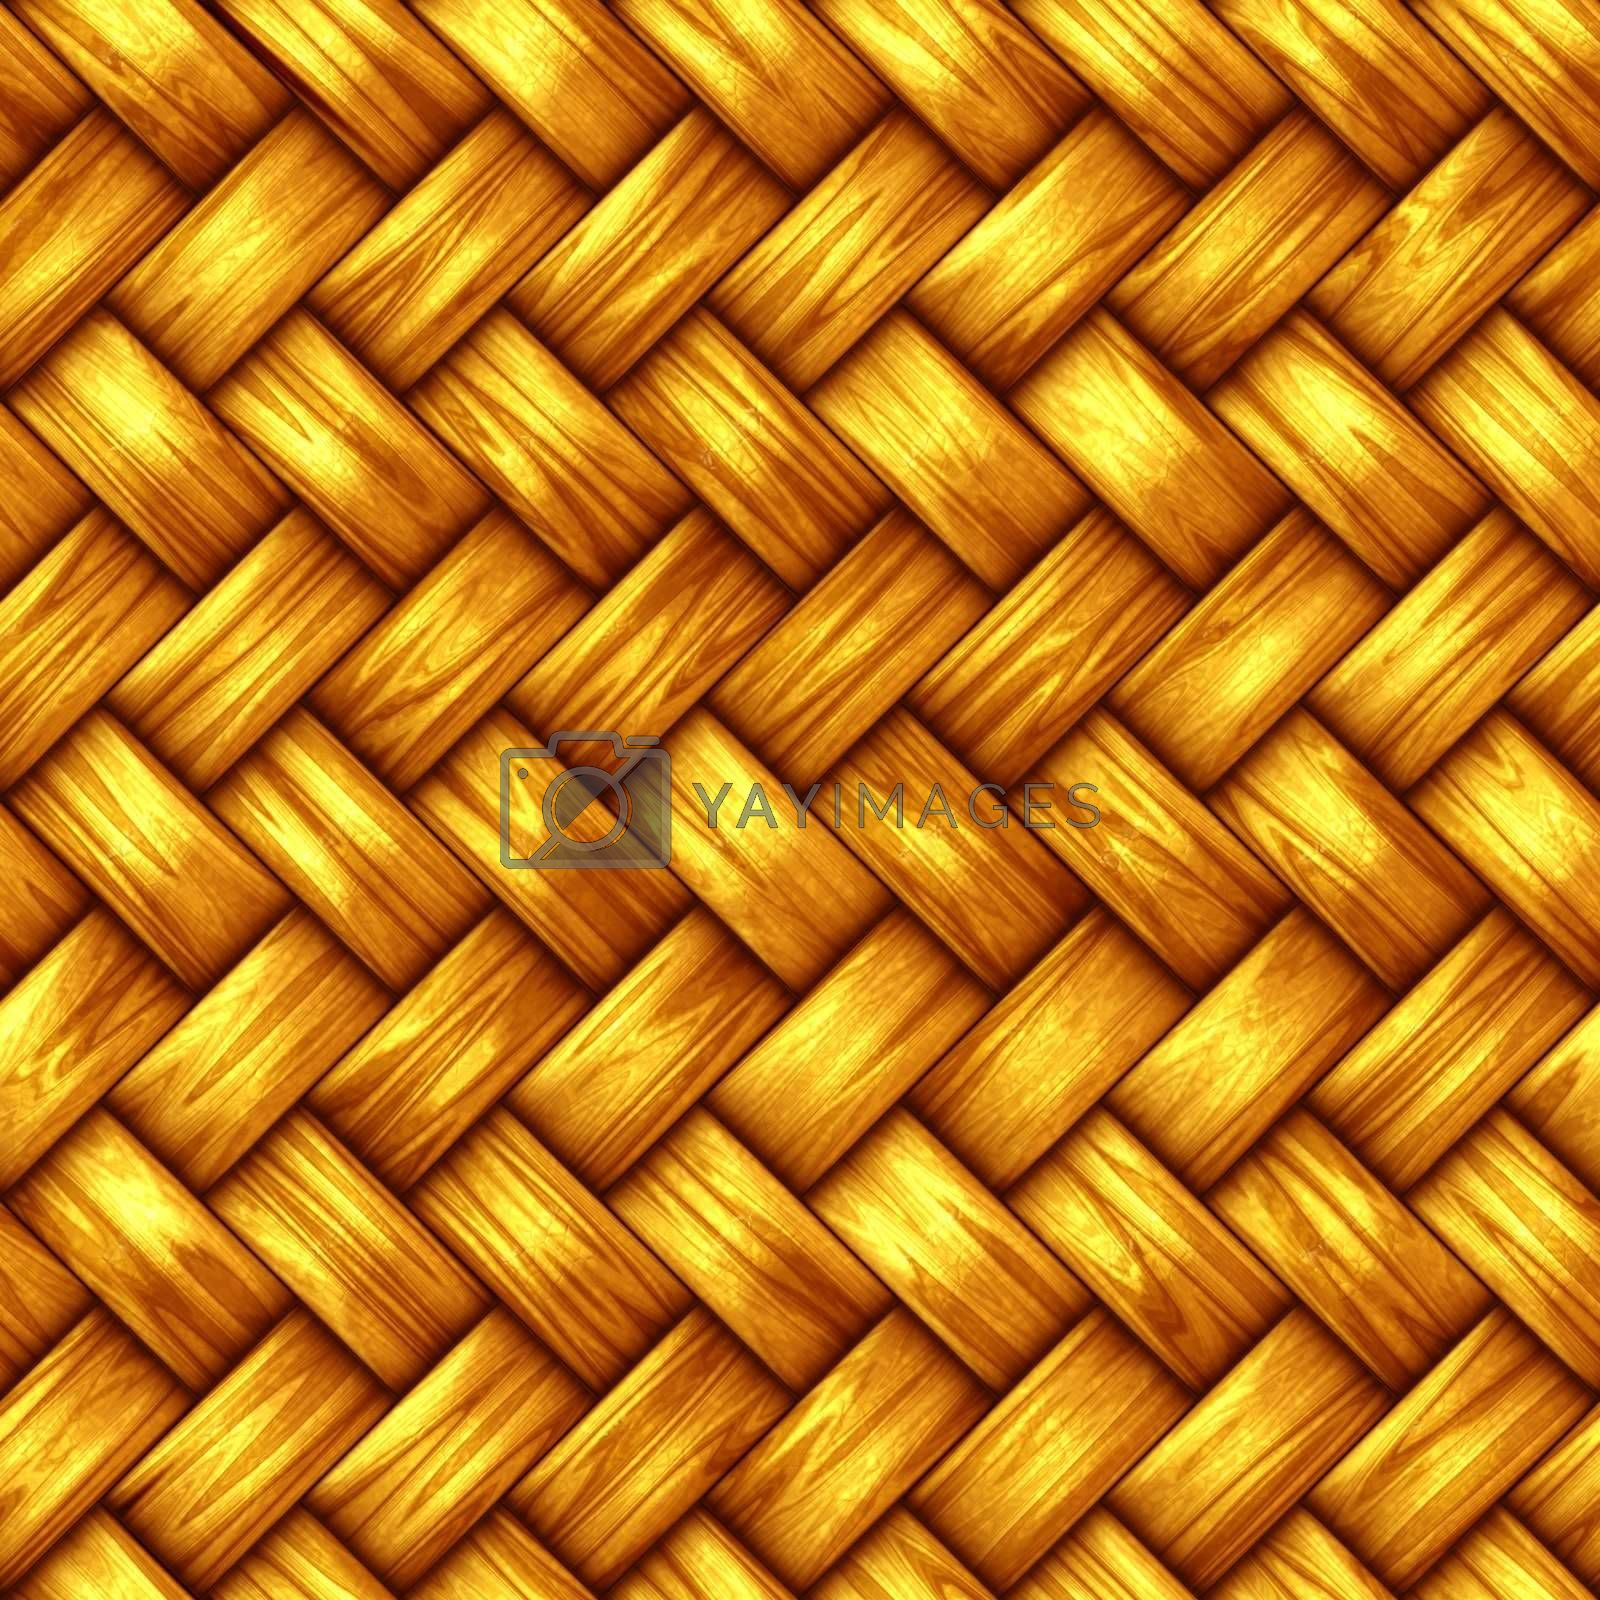 details of seamless intertwined structure in warm yellow